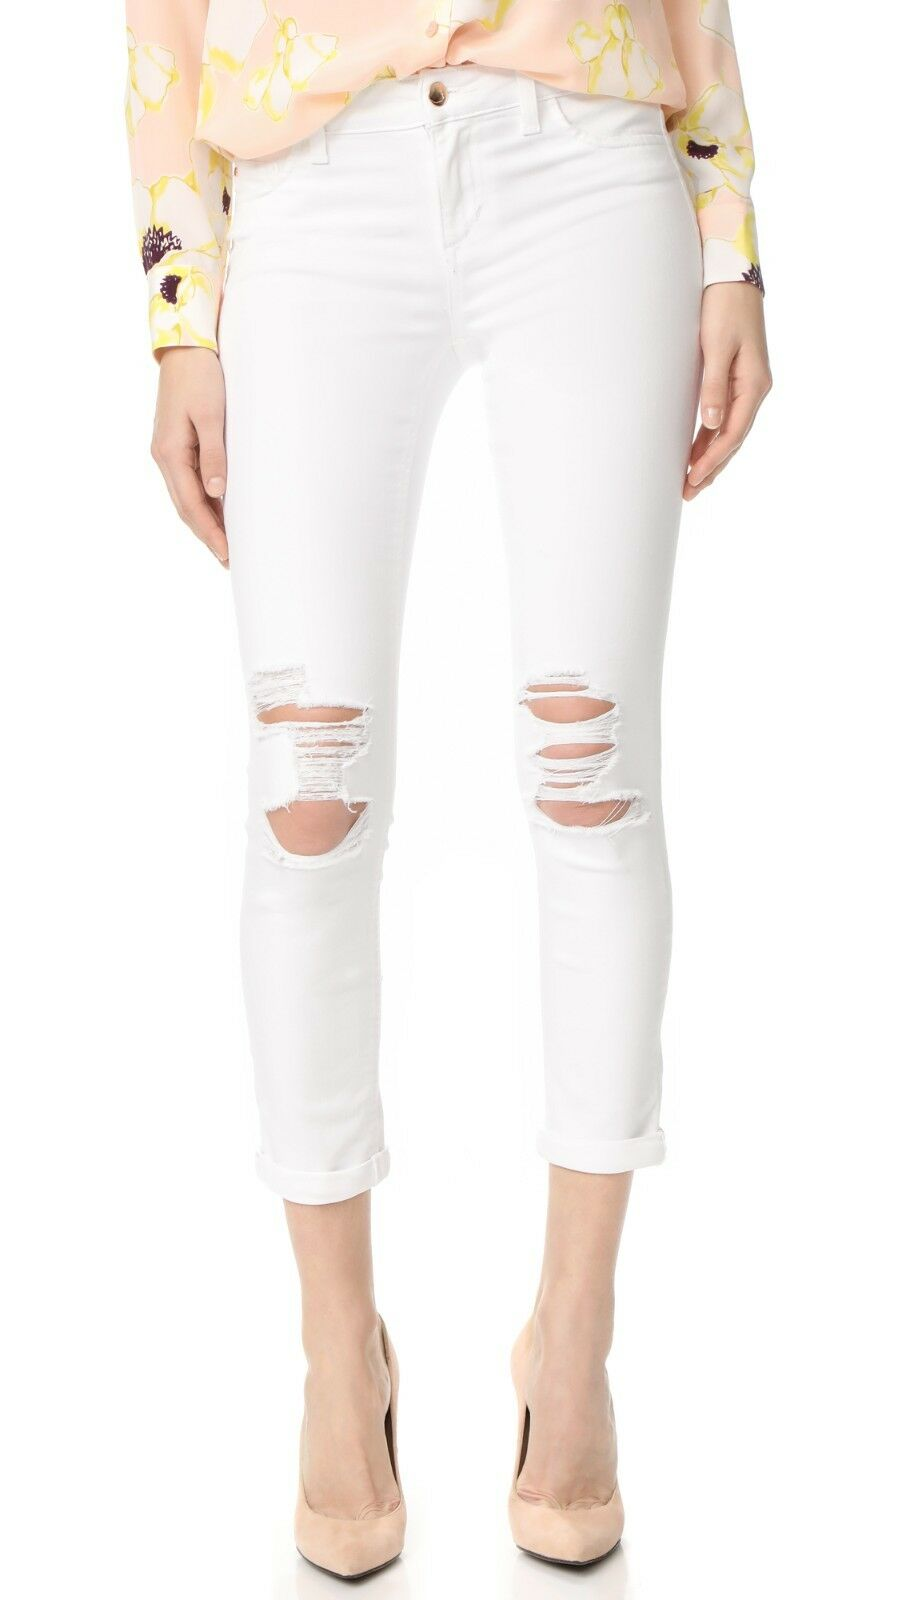 NWT JOE'S Sz27 ROLLED CROP MIDRISE SKINNY STRETCH JEANS DISTRESSED WHITE NATALIE